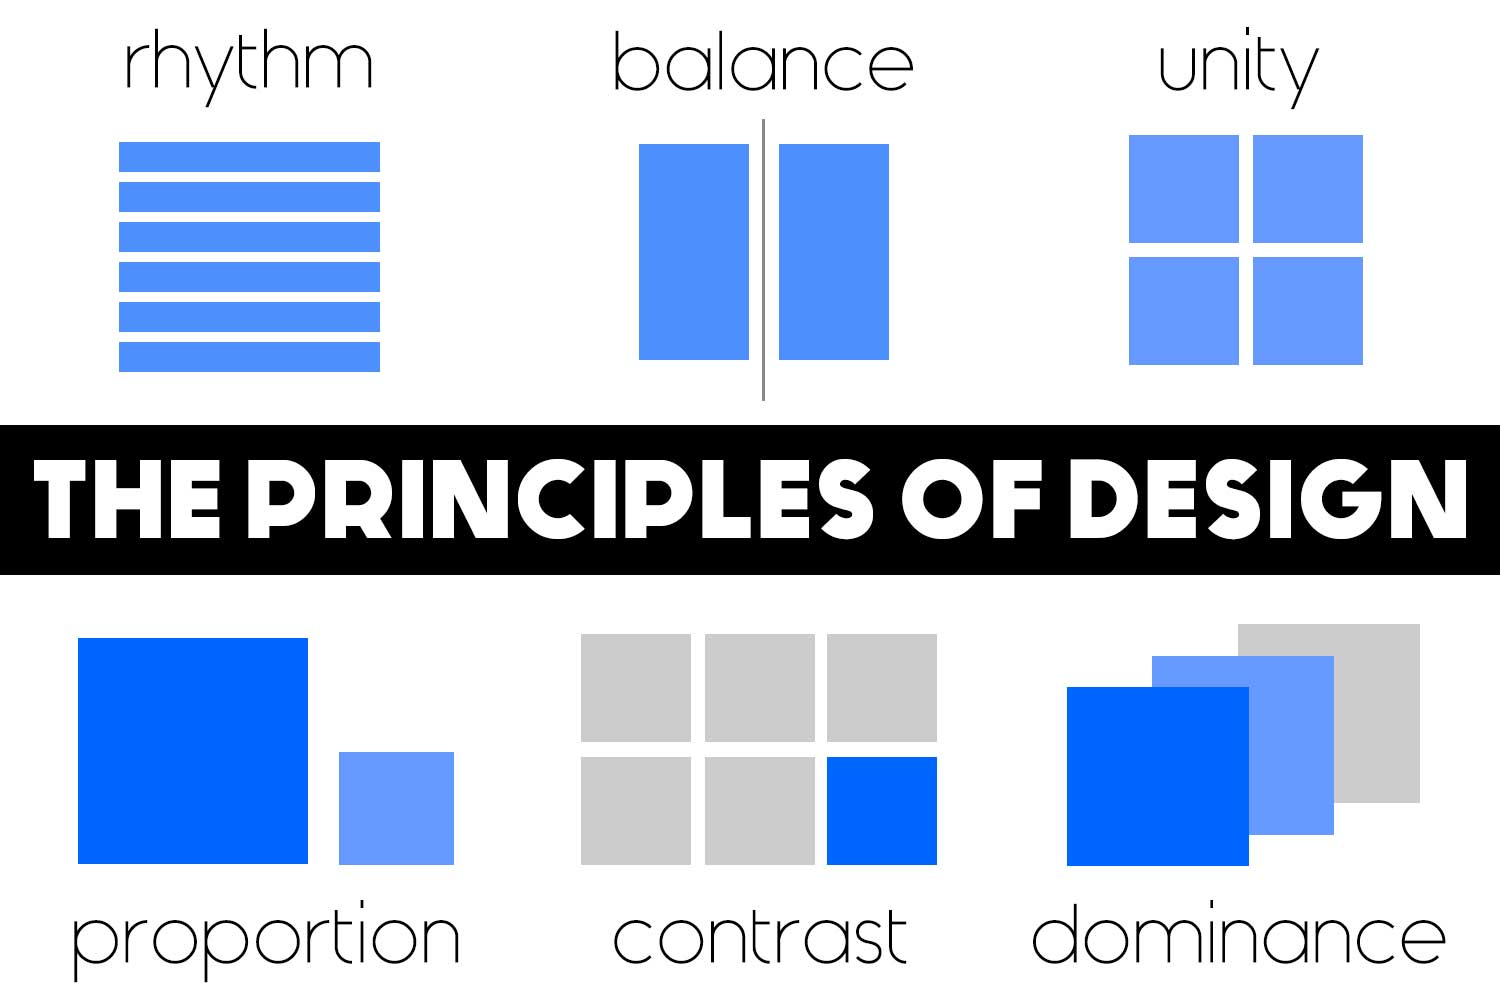 principles of design Ten principles for good design these design principles from the legendary product designer dieter rams has influenced not only the iconic product designs from braun in the 1960s, but also the design of apples products.